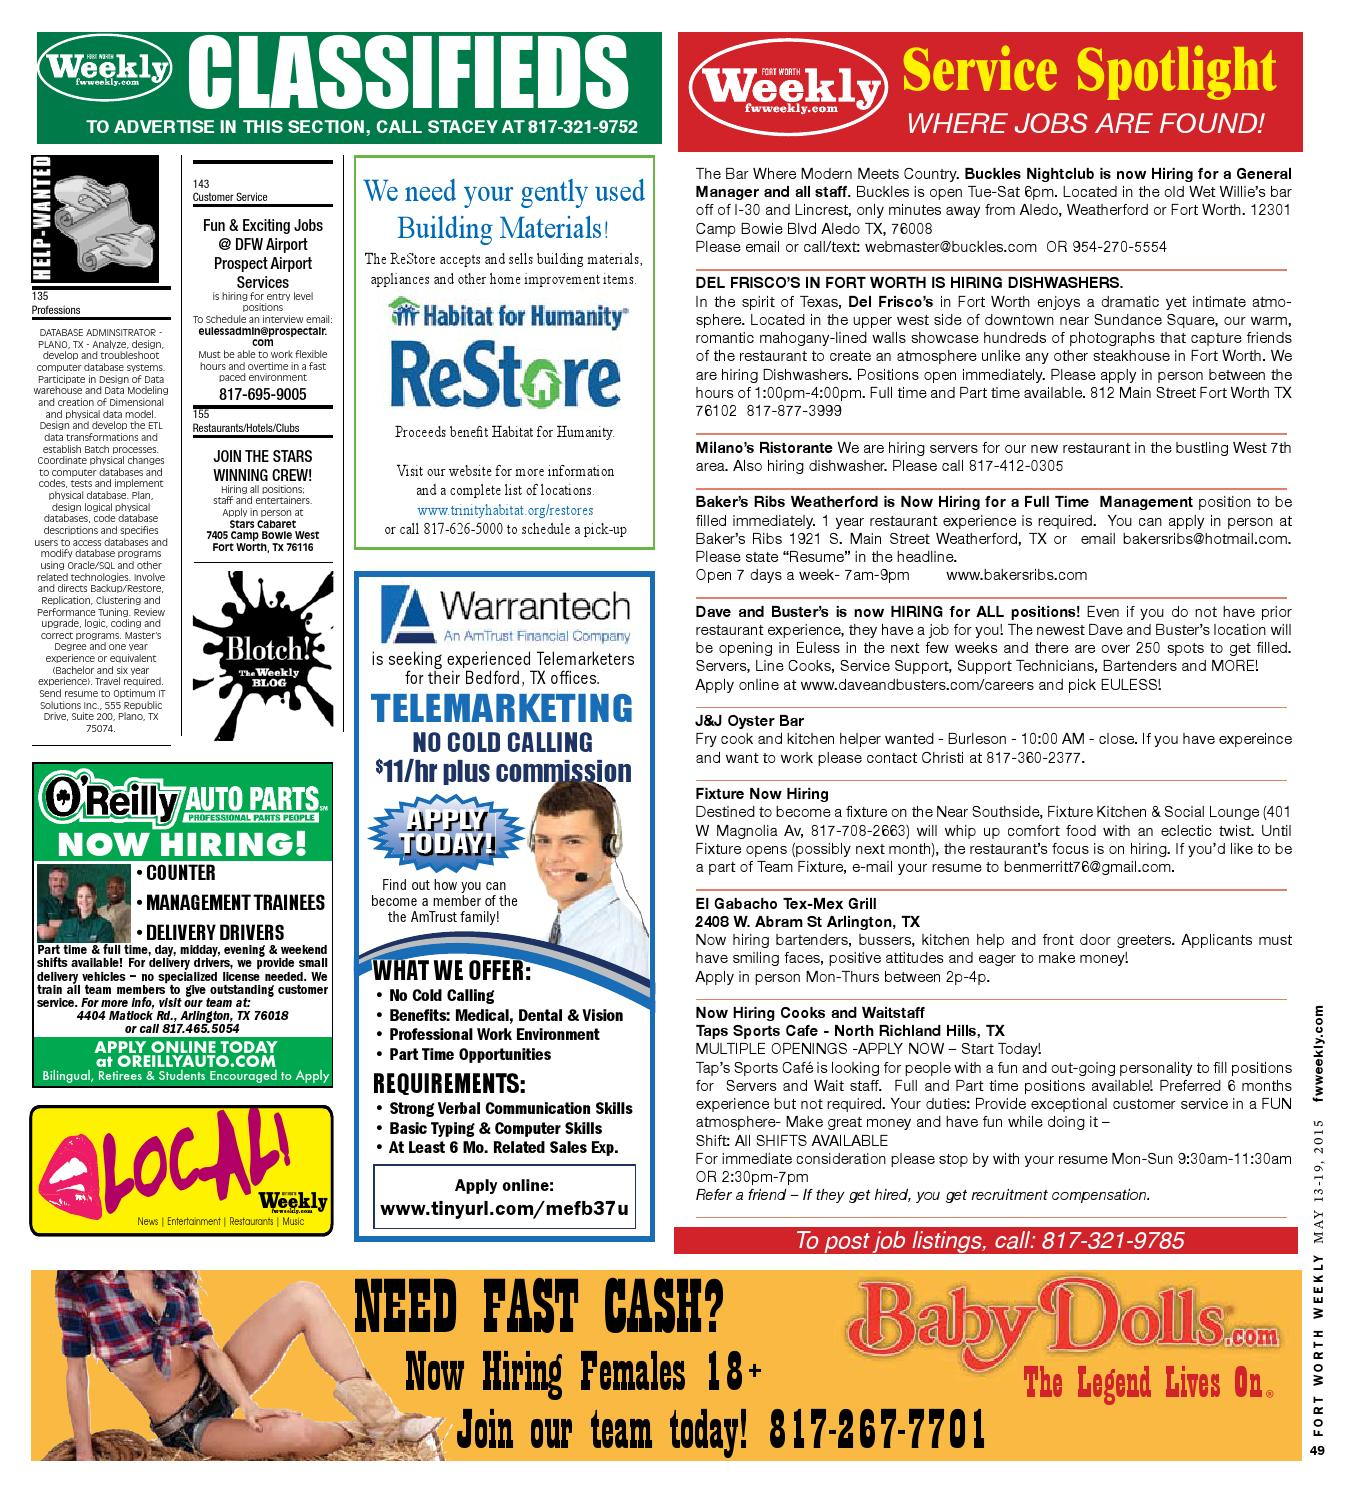 Data Warehouse Etl Developer Resume: Classifieds By Fort Worth Weekly